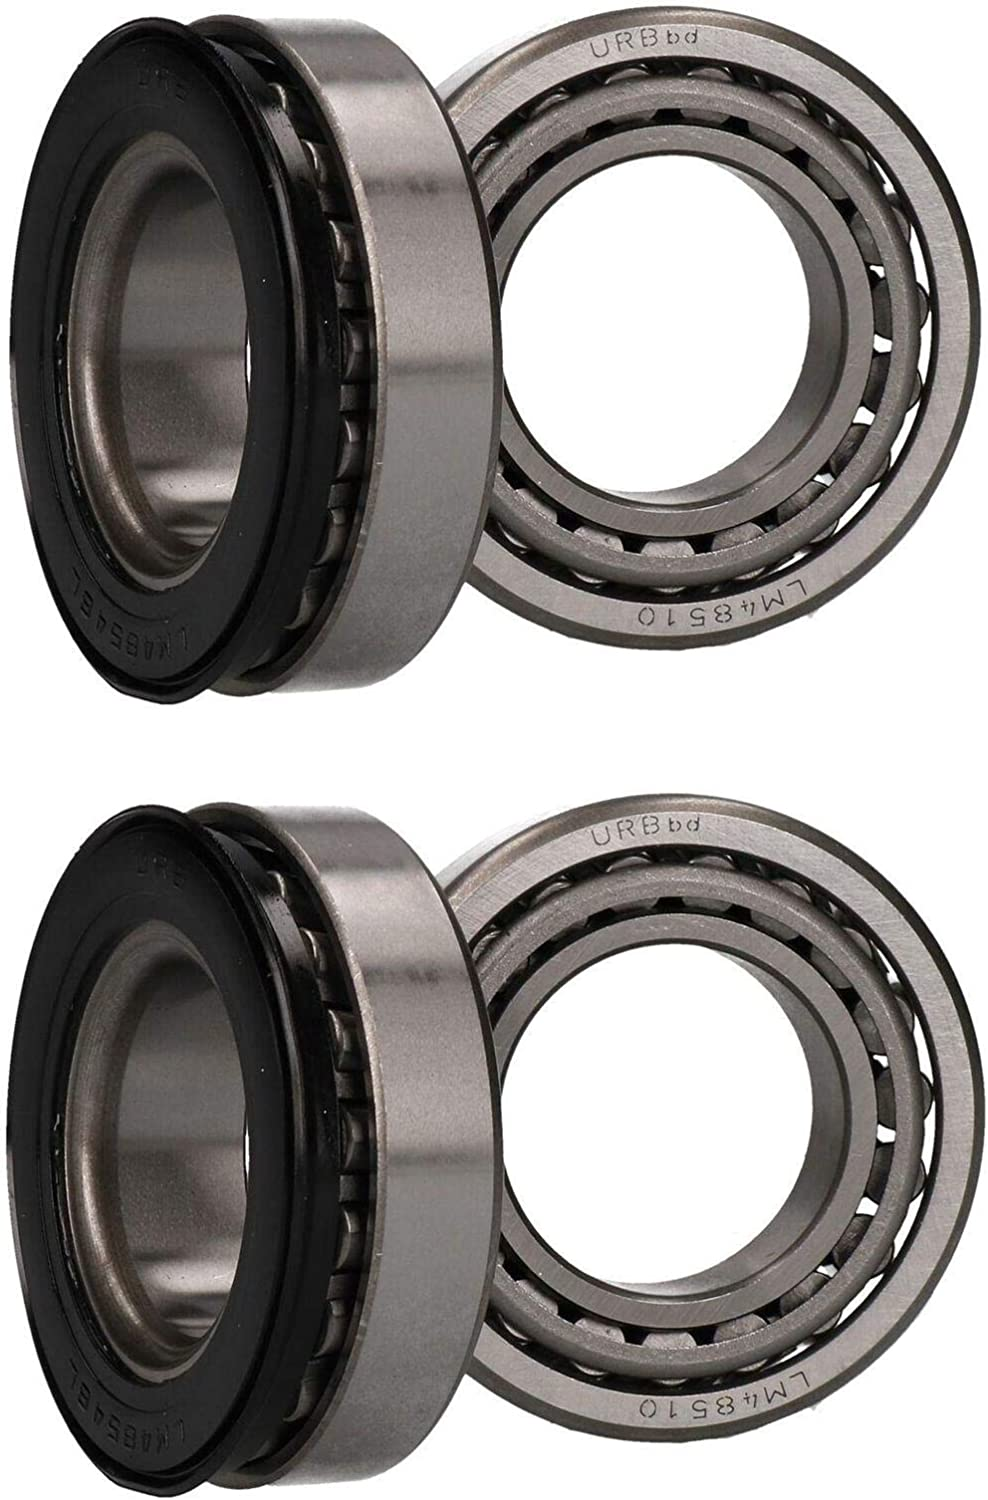 Seattle Mall 2 x Wheel outlet Bearing Kit for Indespension Braked Trailers Boat Sing